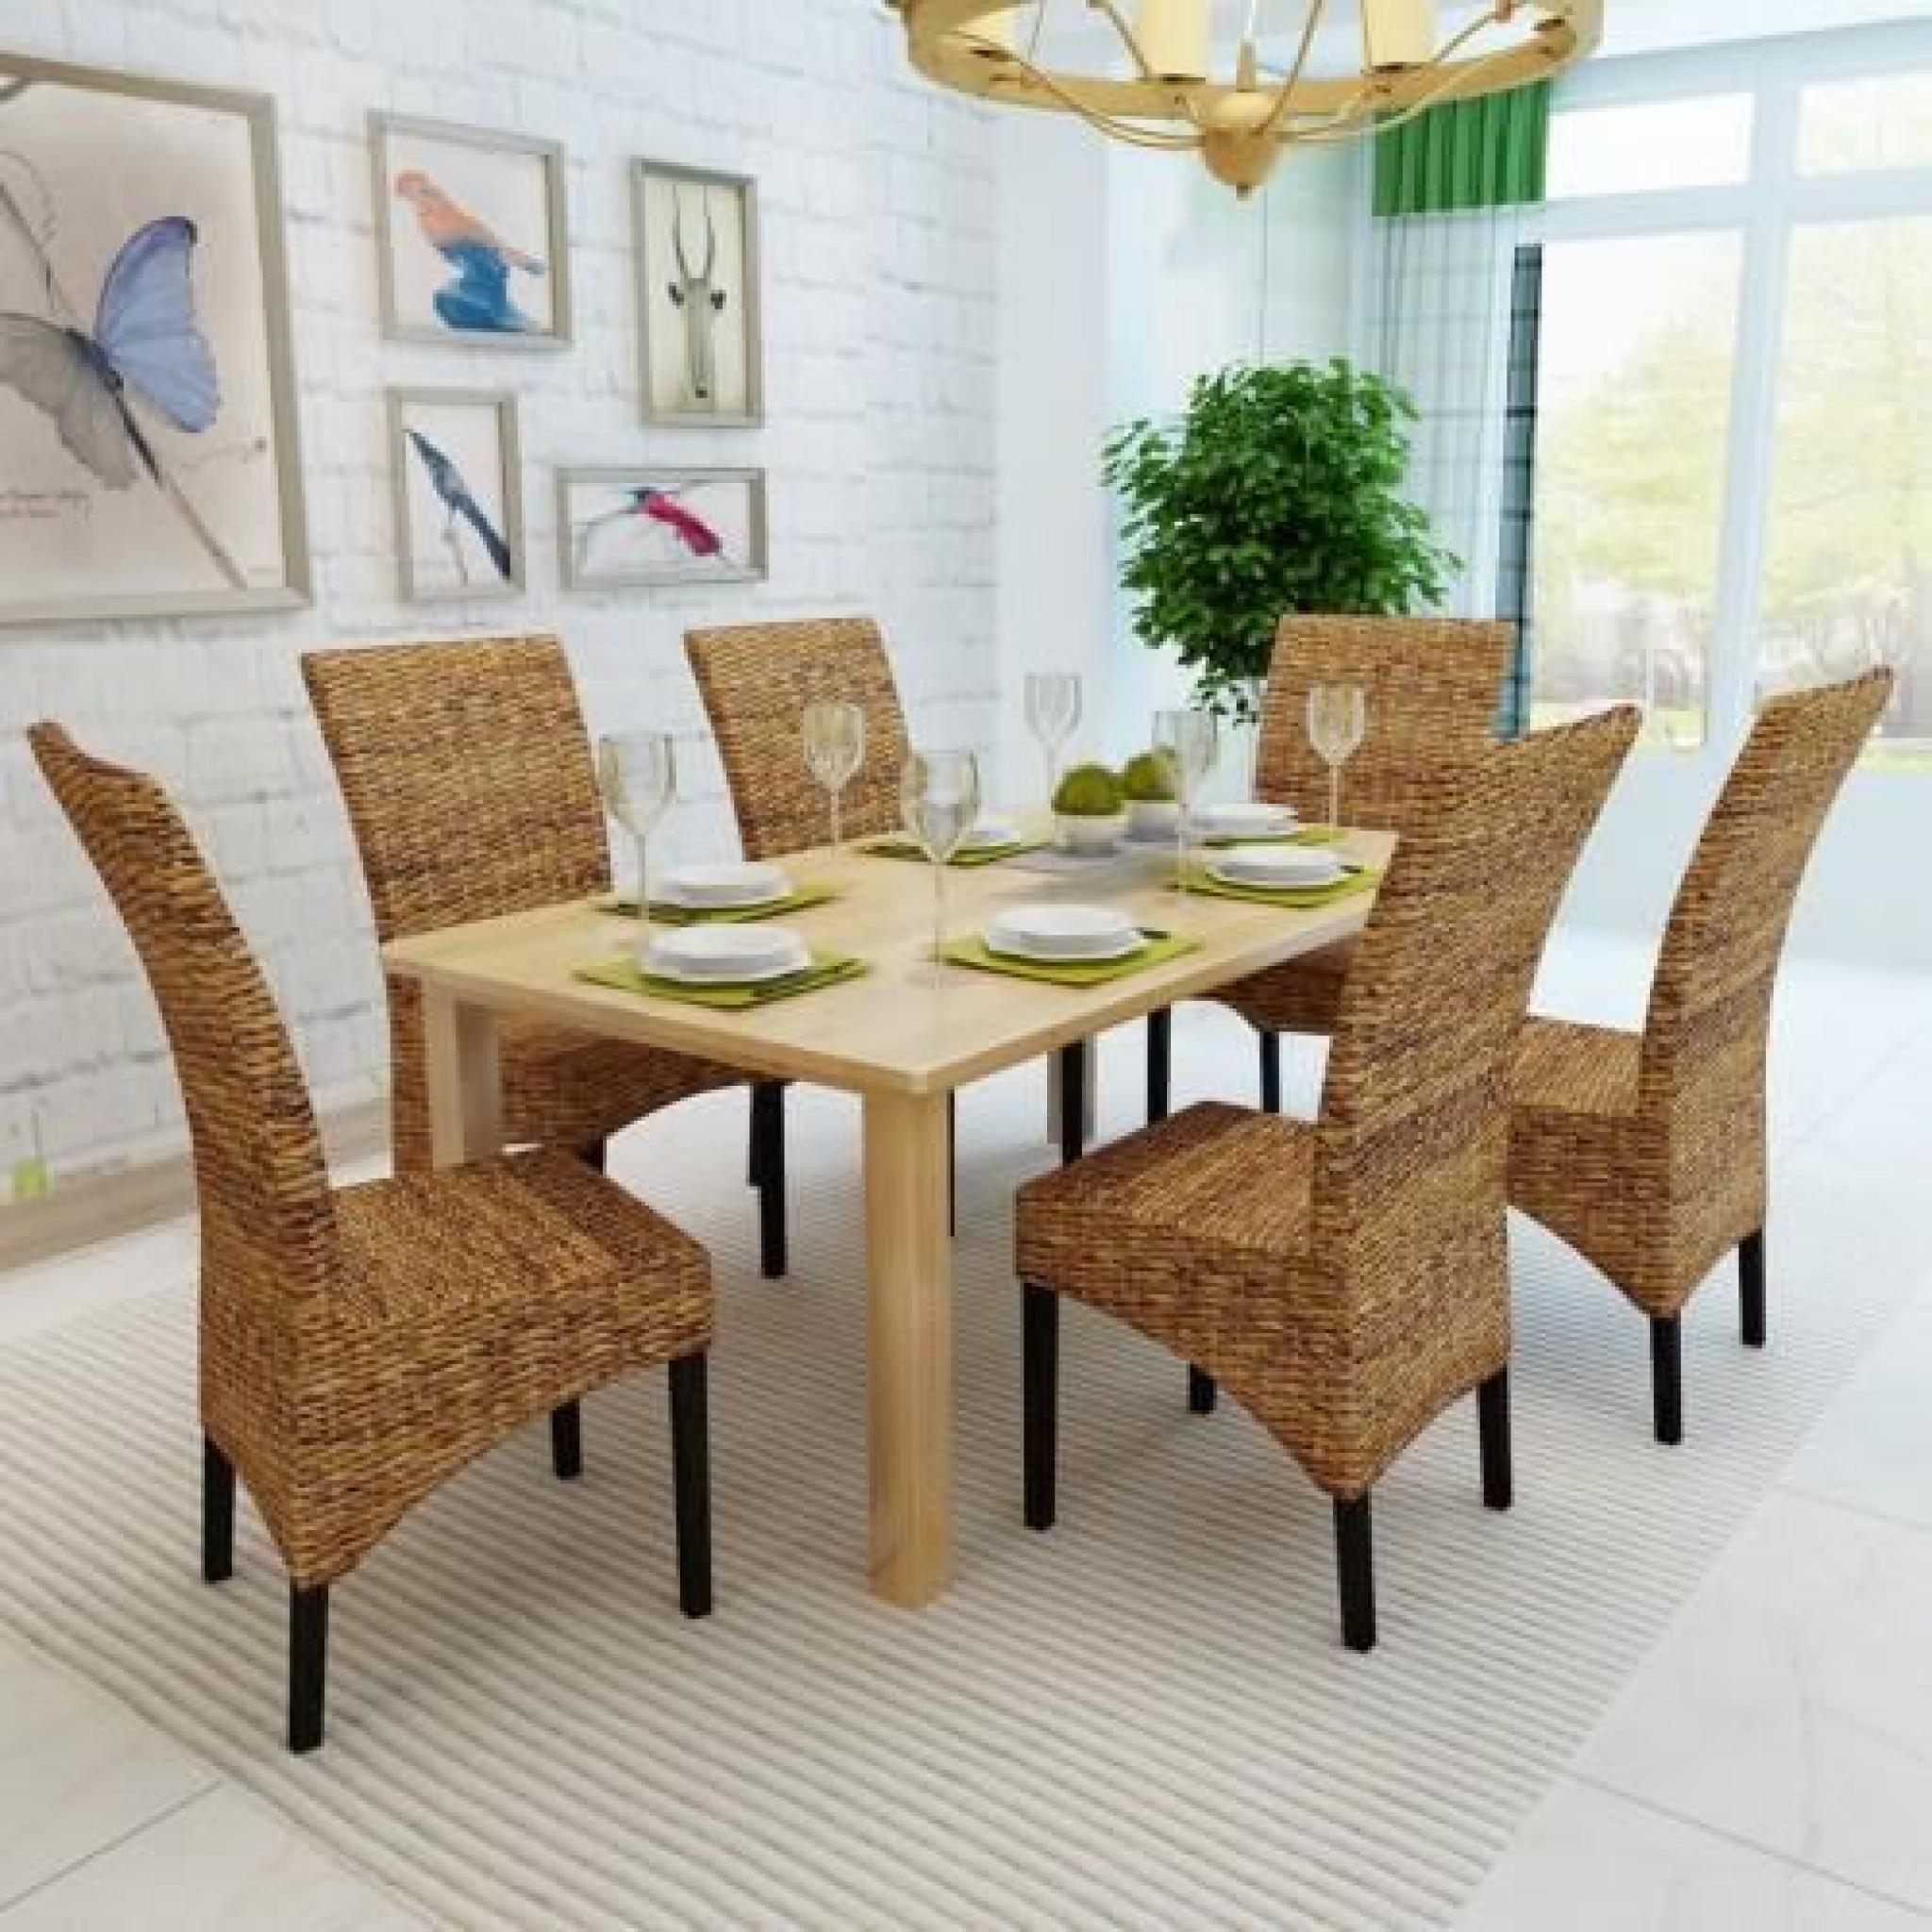 Ensemble table a manger et chaise pas cher maison design for Ensemble table plus chaise